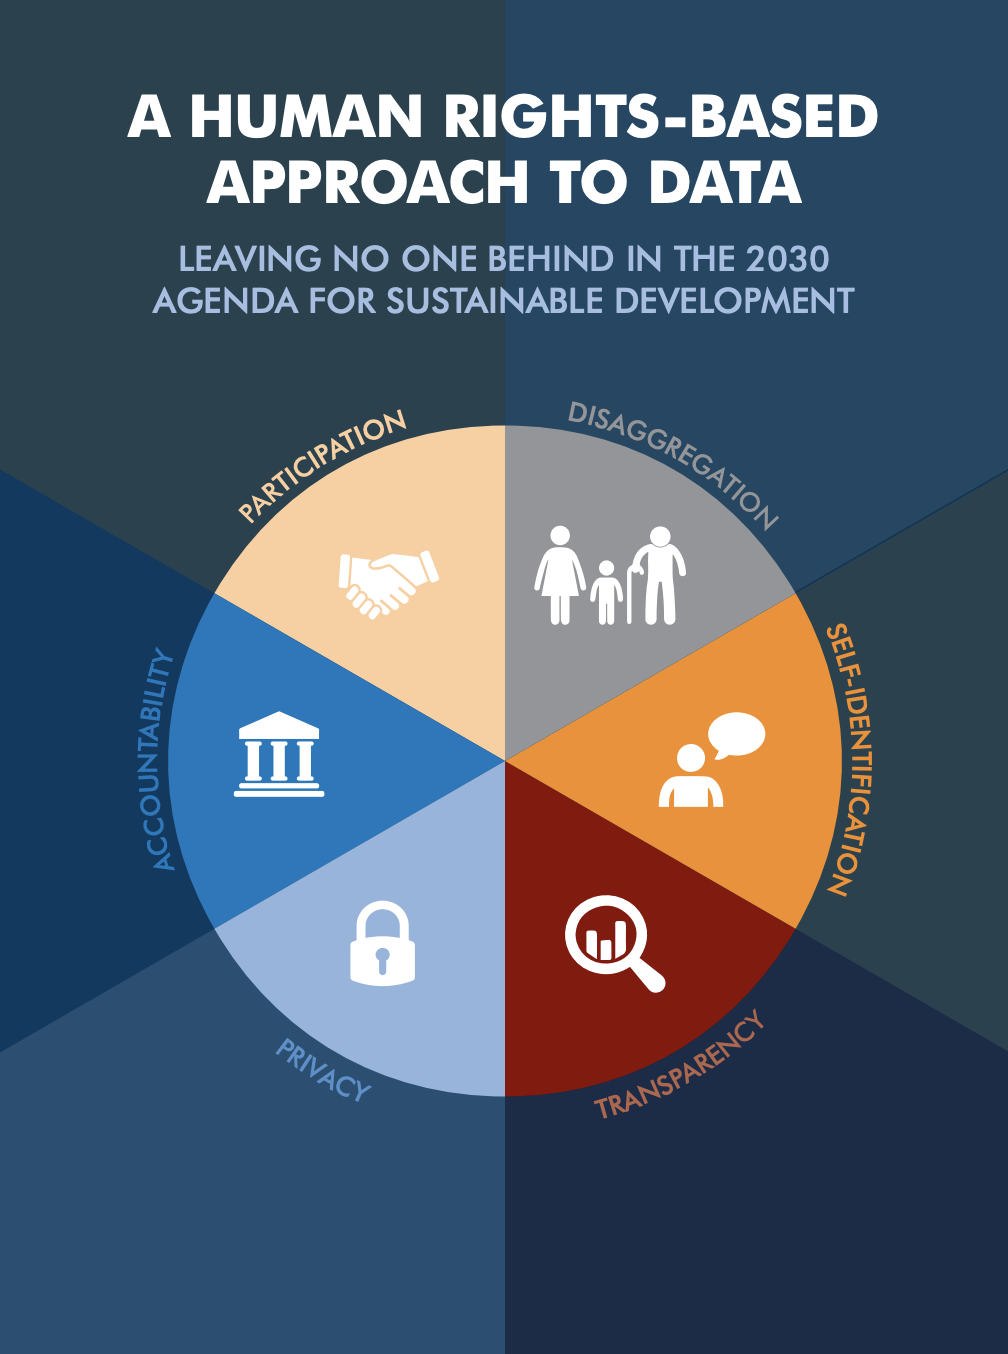 A Human Rights-Based Approach to Data